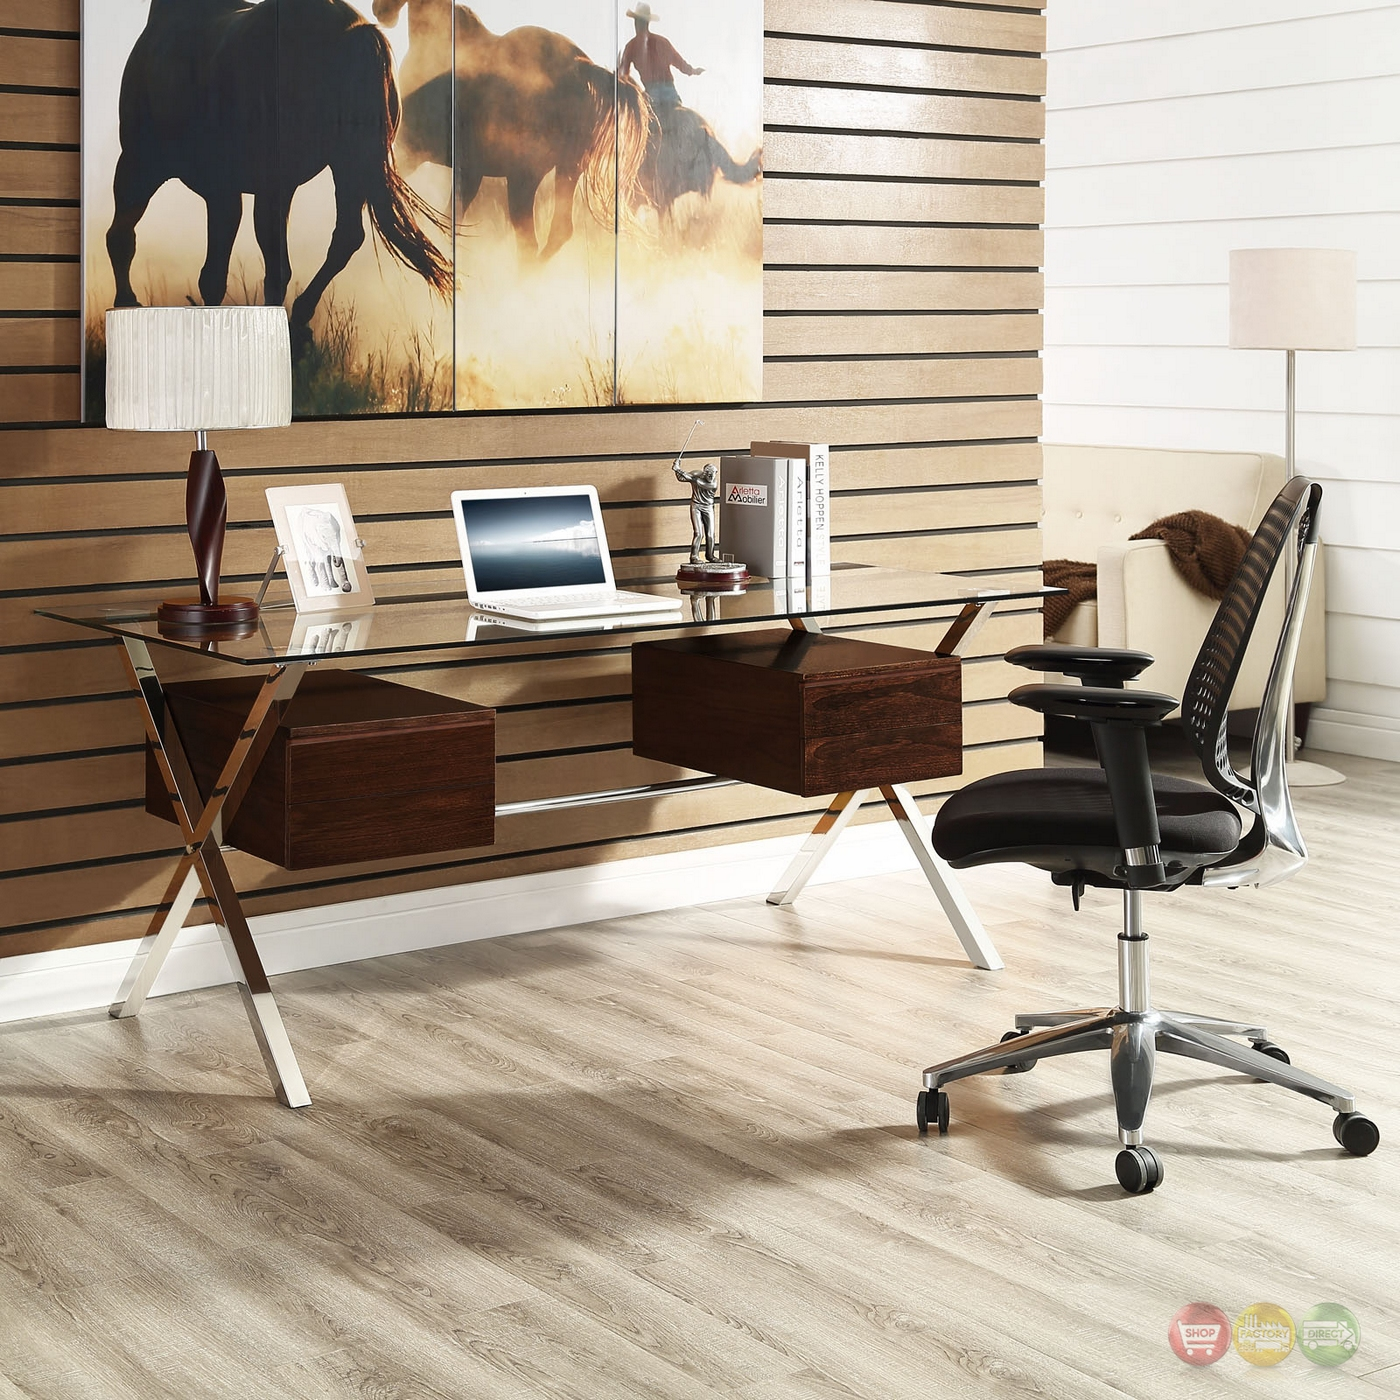 Abeyance Modern Glass Top & Steel Office Desk With Walnut Finished Drawers, Walnut